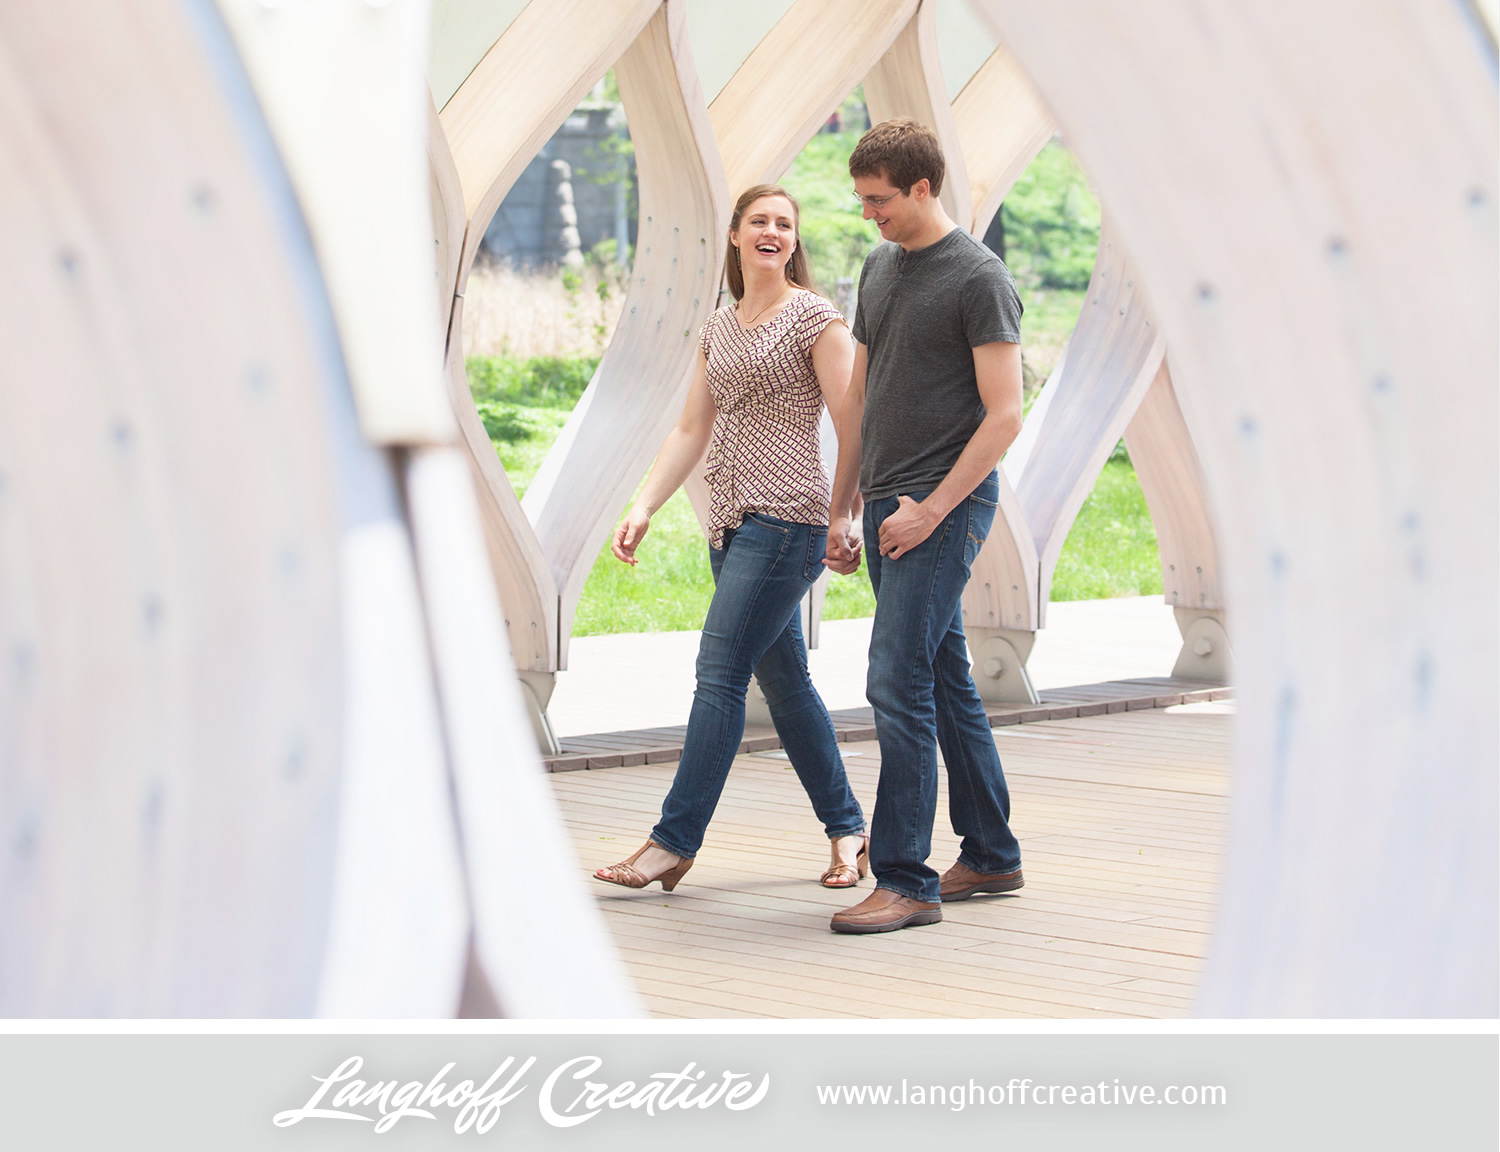 ChicagoEngagement-LincolnParkZoo-Engaged-LanghoffCreative-DestinationWeddingPhotographers-2014-ZacRachel-12-photo.jpg